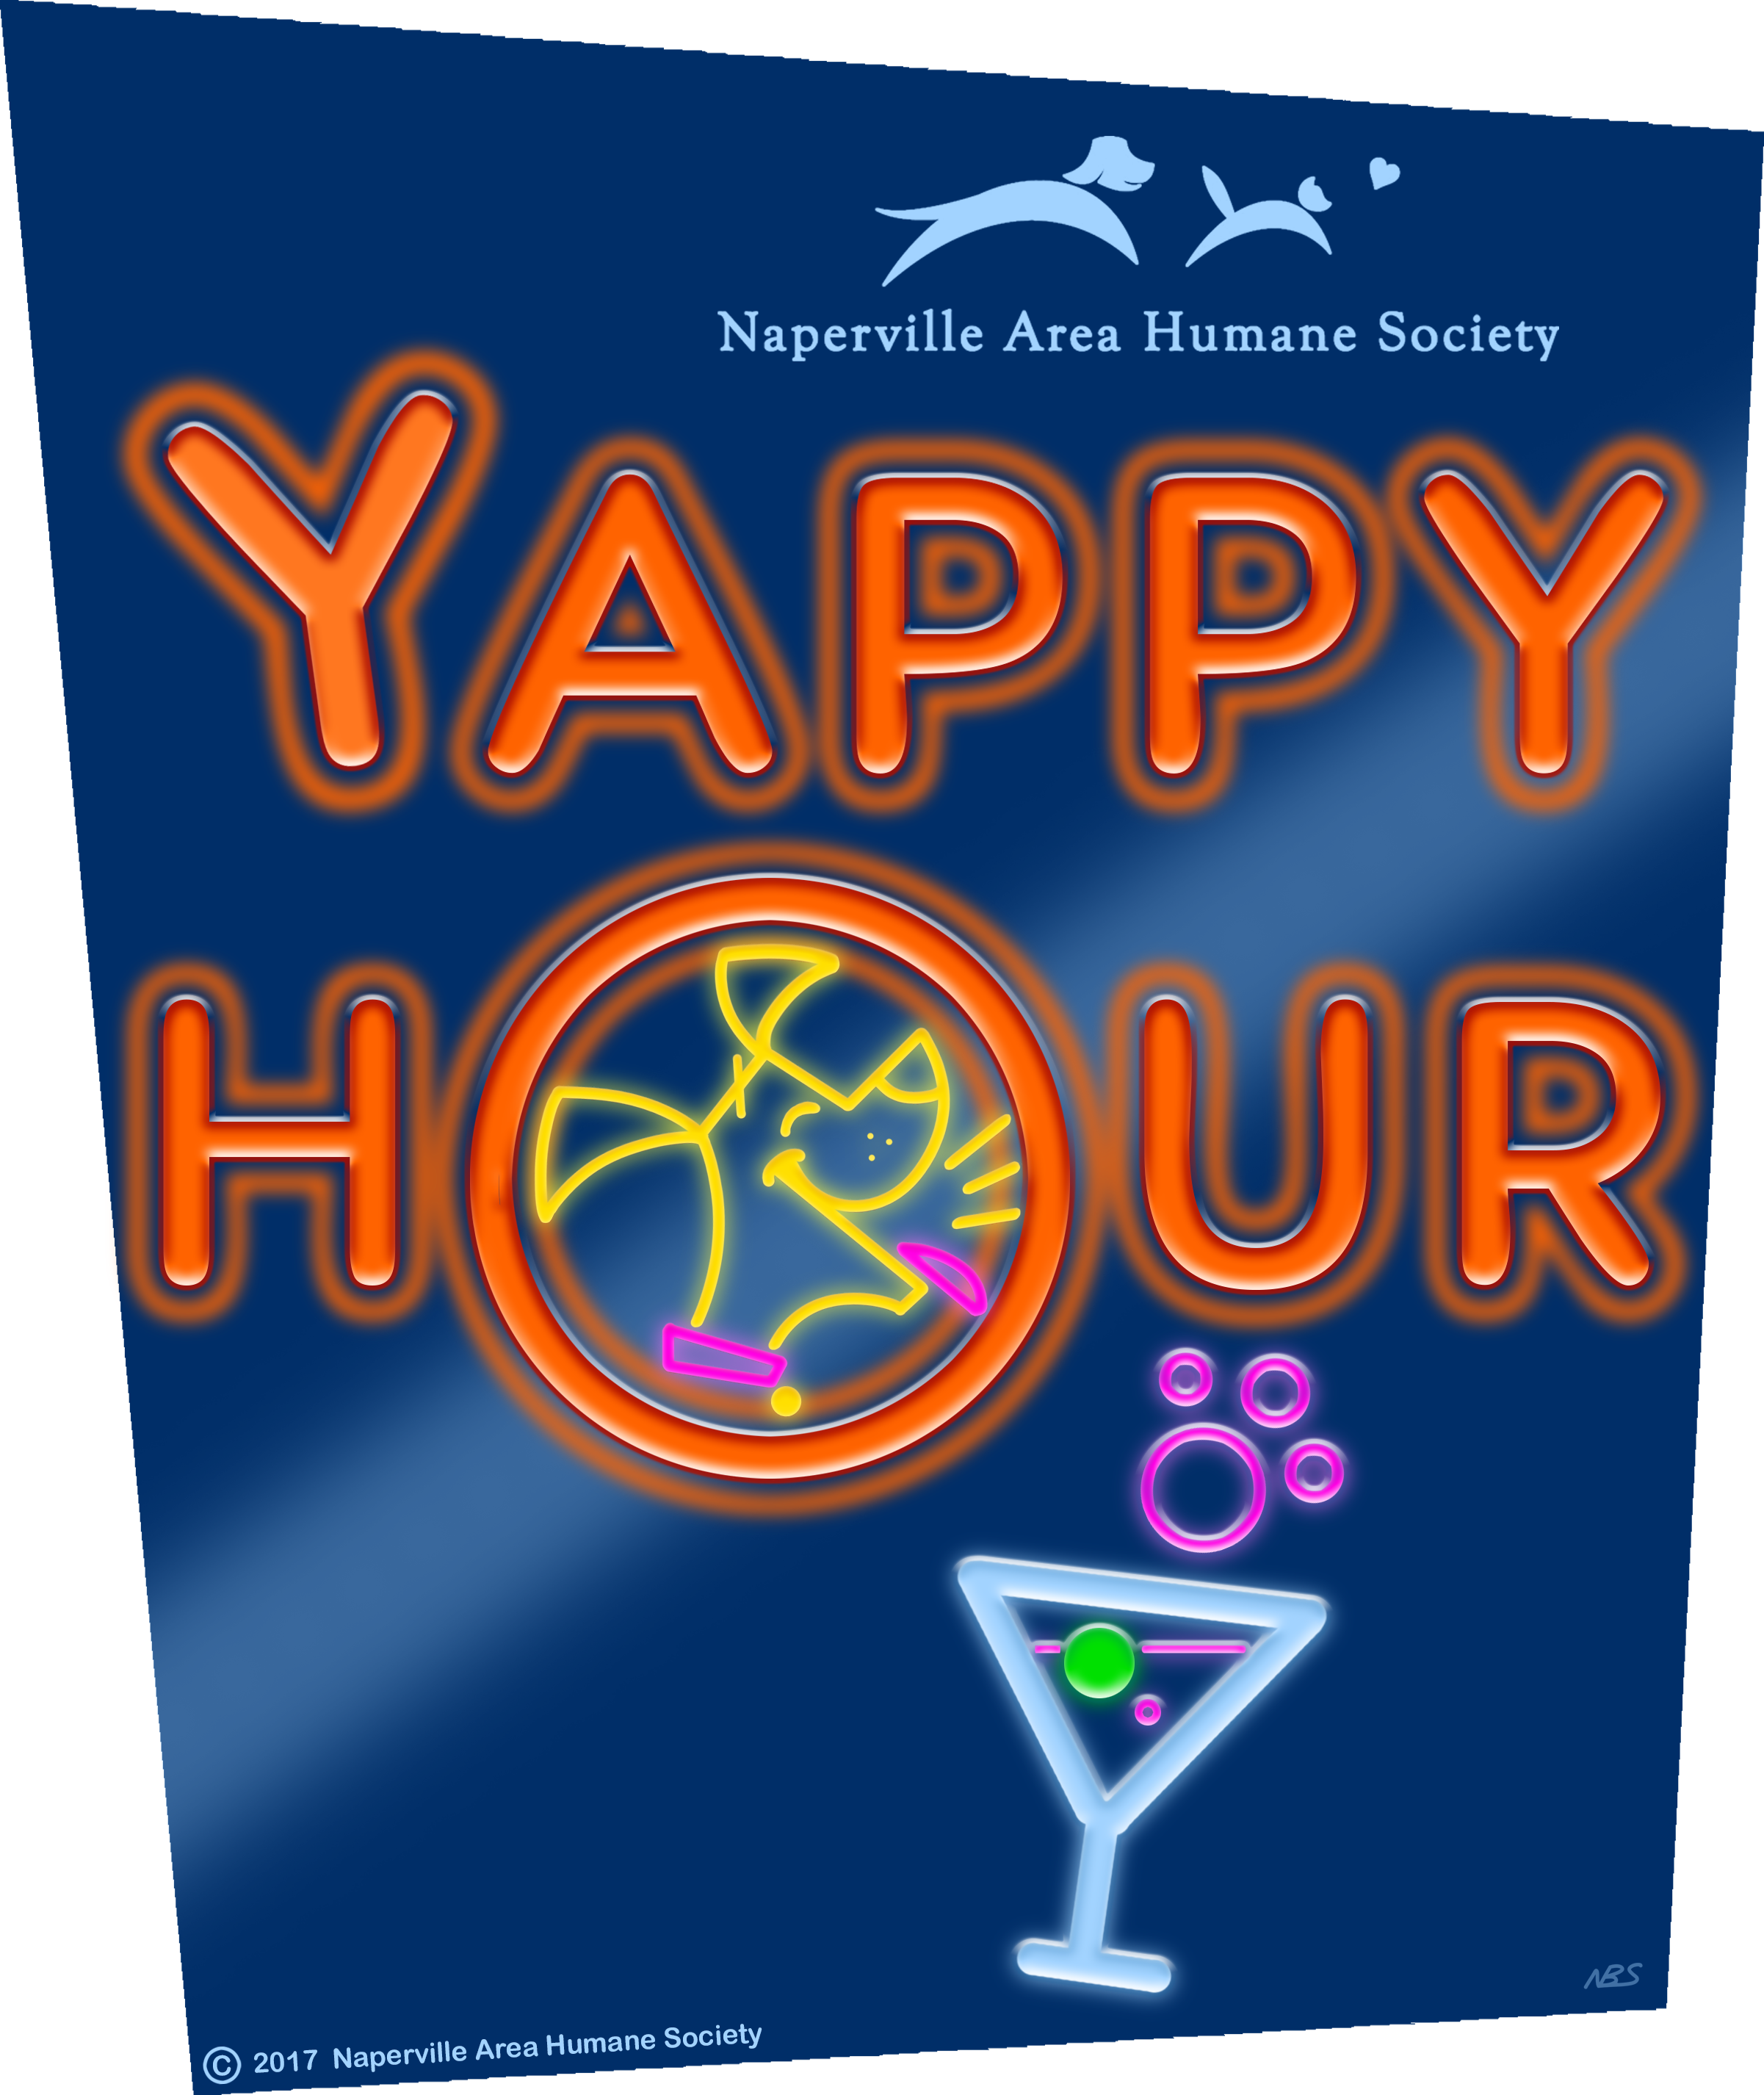 Yappy_Hour_logo_FINAL_ART_COLOR.png